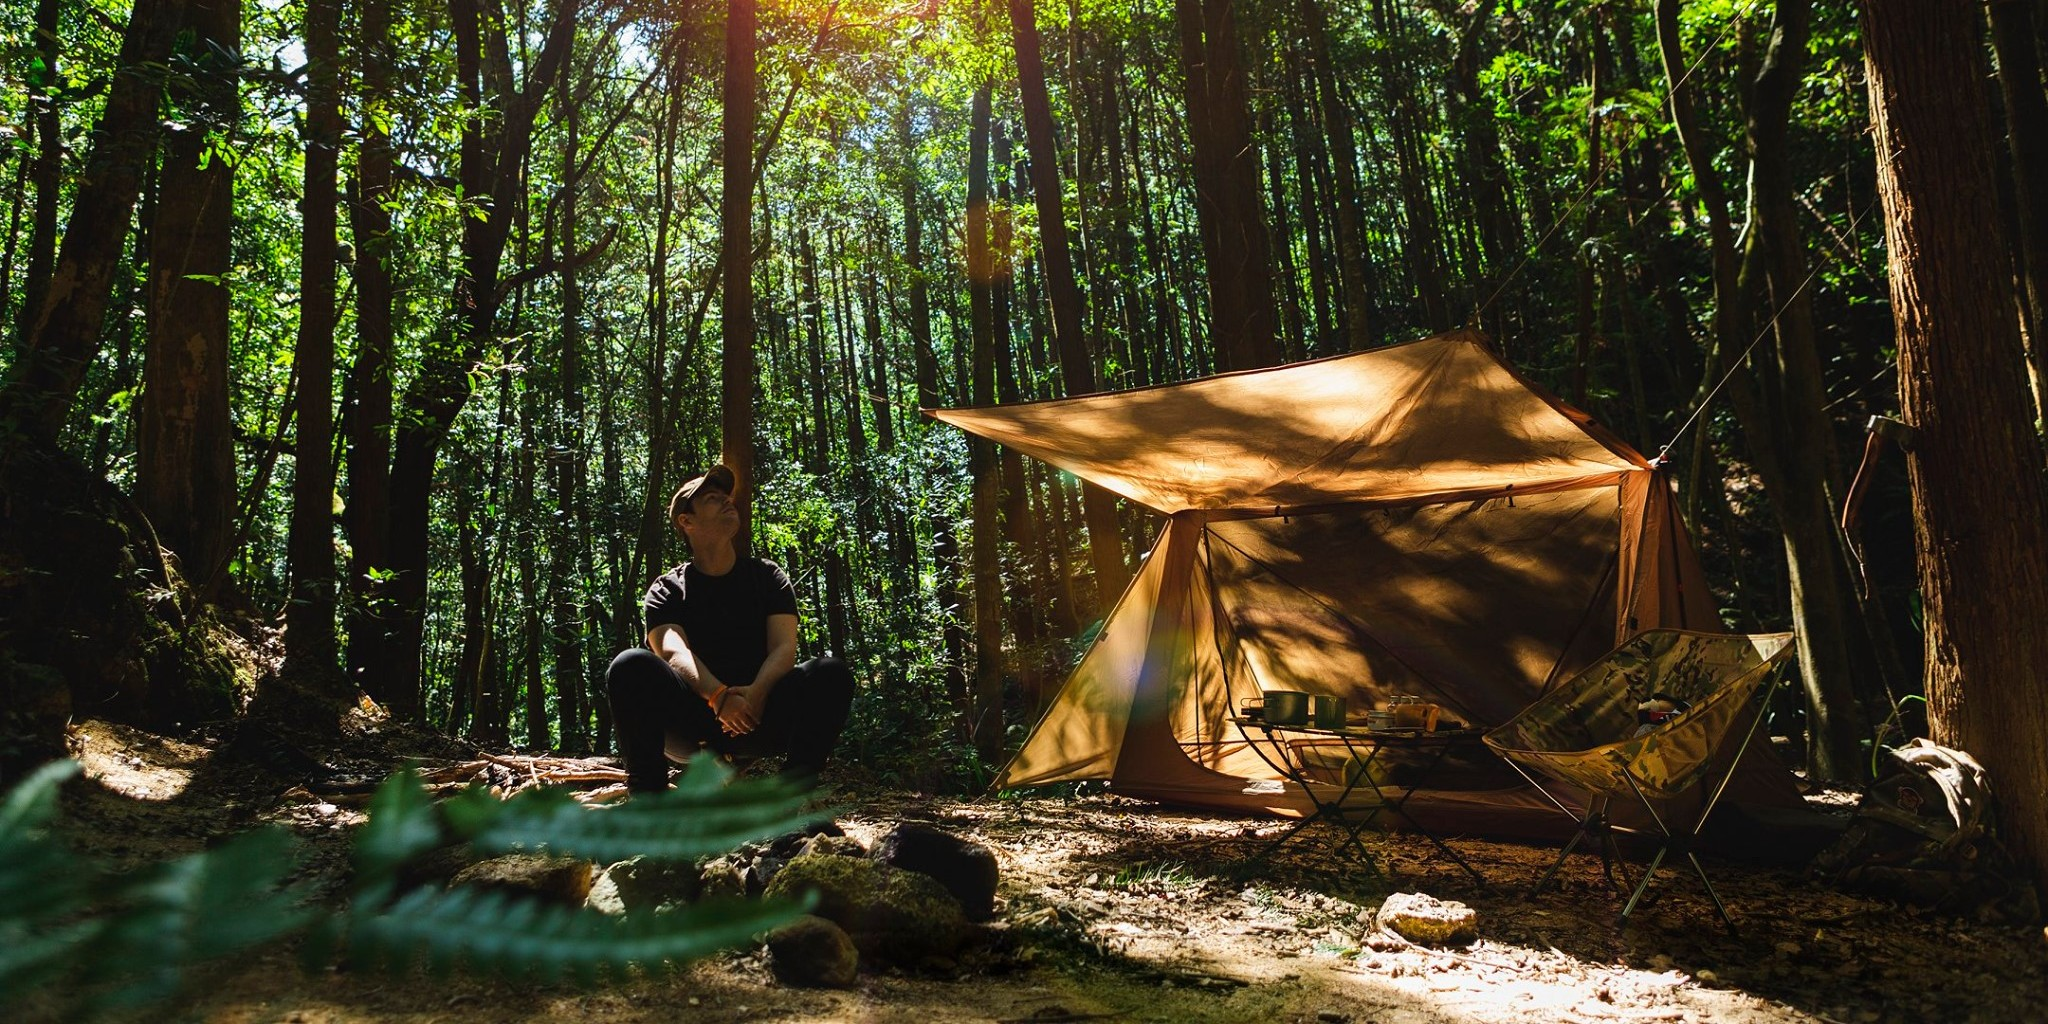 5 best backcountry hunting tents 2020: carry light, blend in and stay sheltered